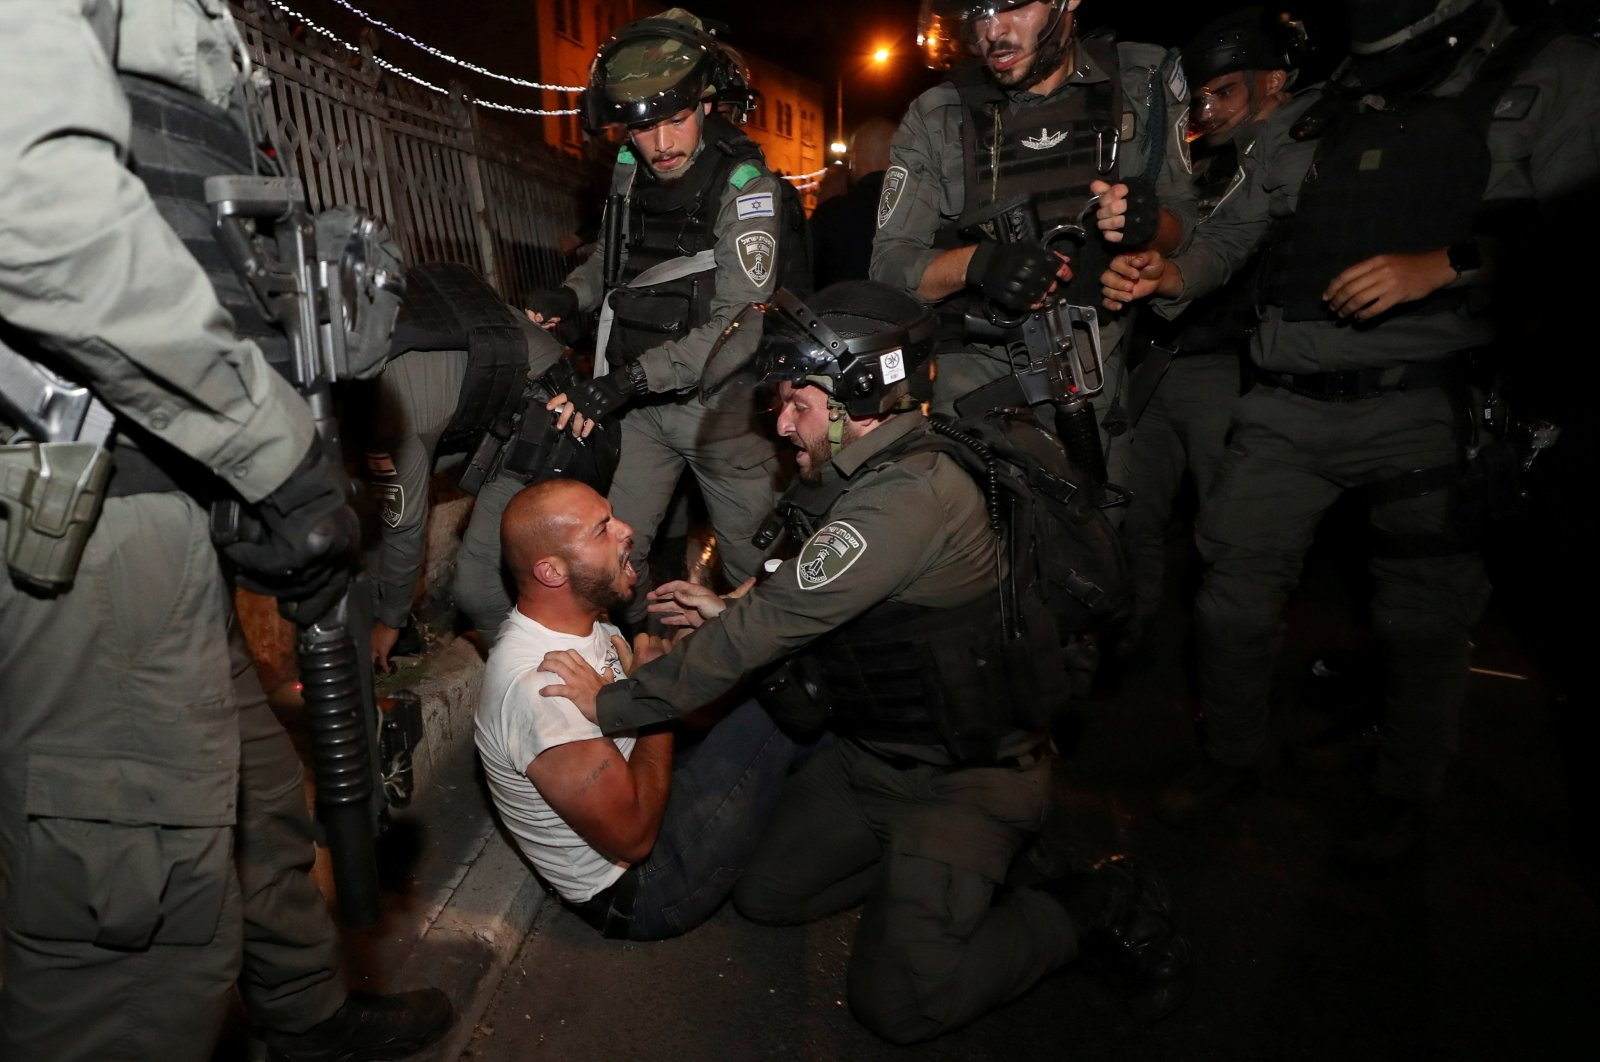 A Palestinian protester is detained during clashes with Israeli police, as the Muslim holy fasting month of Ramadan continues, in Jerusalem, April 23, 2021. (Reuters Photo)